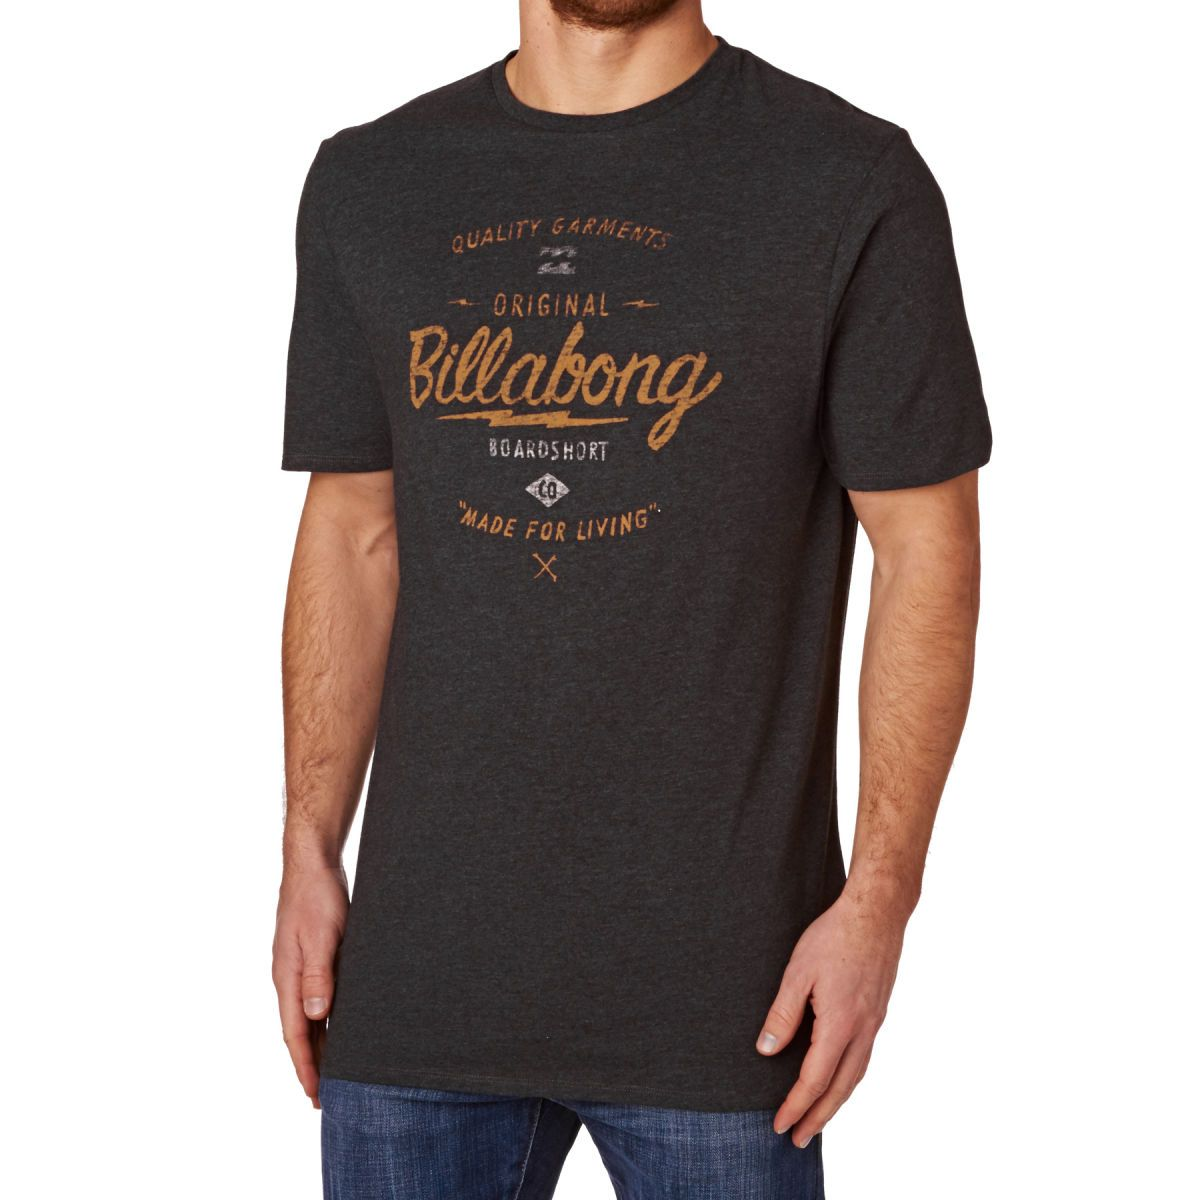 Billabong Choppers T-shirt - Black | Diseño de Polos | Pinterest ...